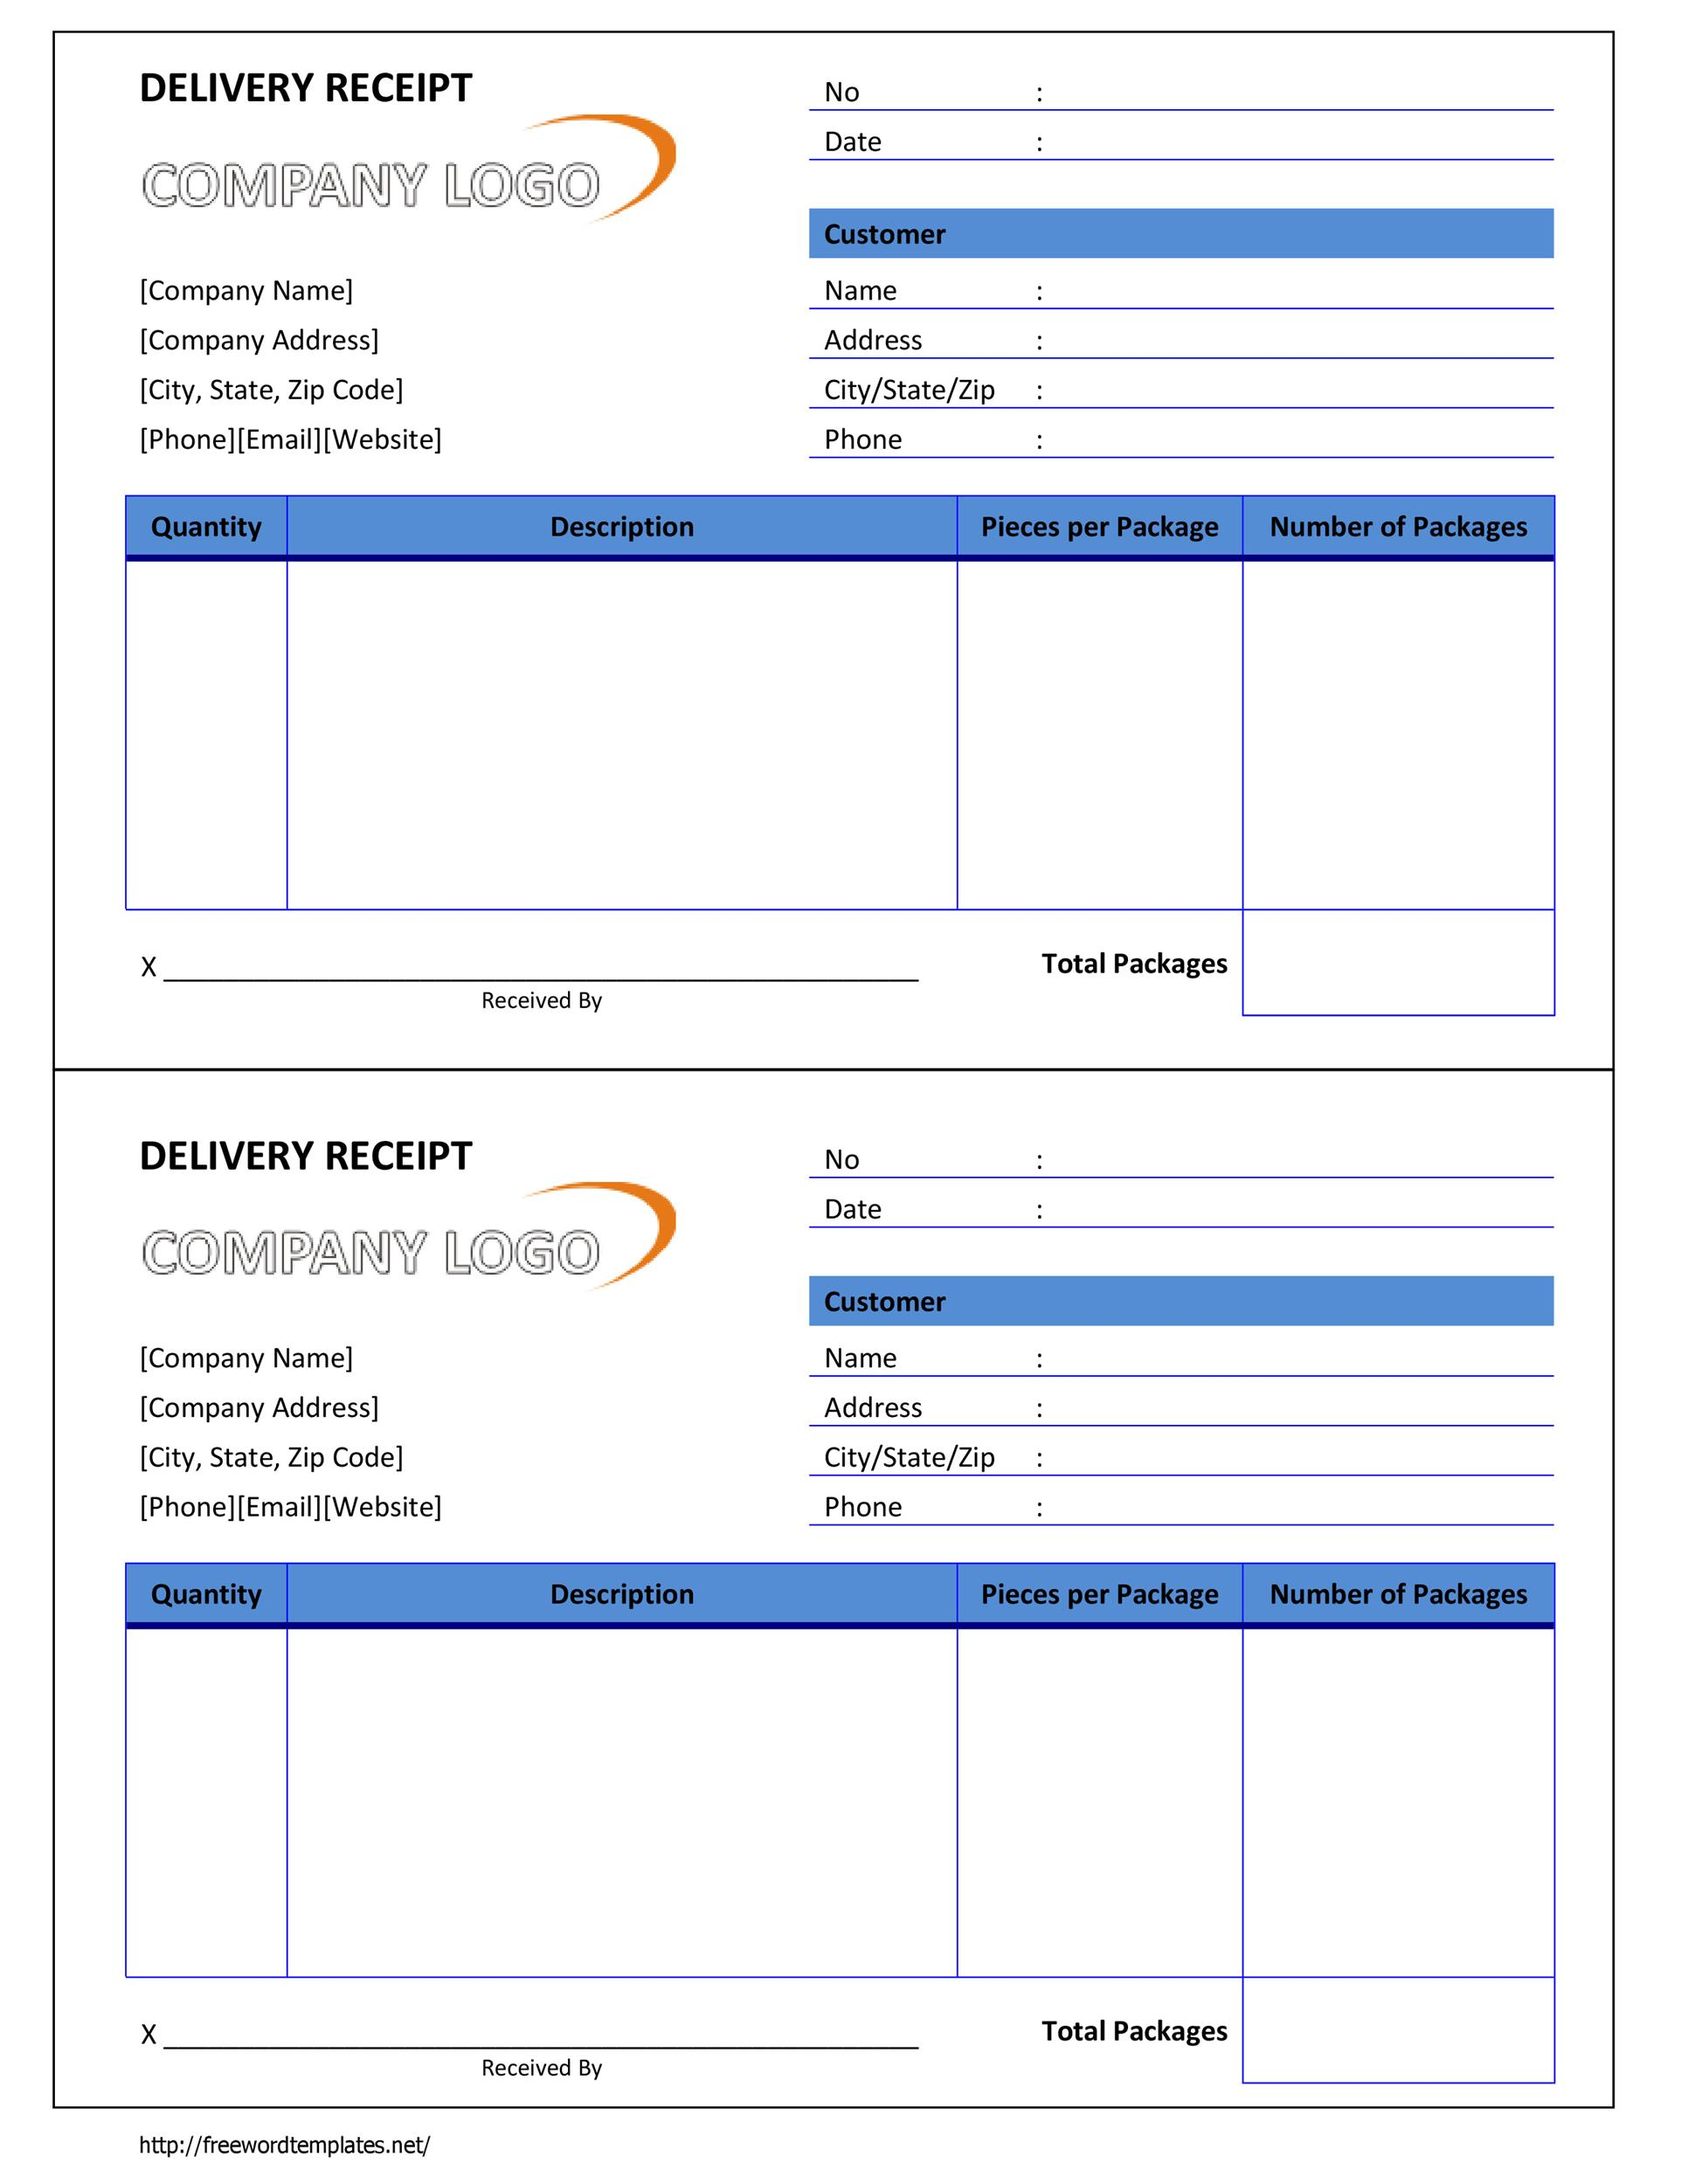 50 Free Receipt Templates Cash Sales Donation Taxi – Delivery Confirmation Form Template